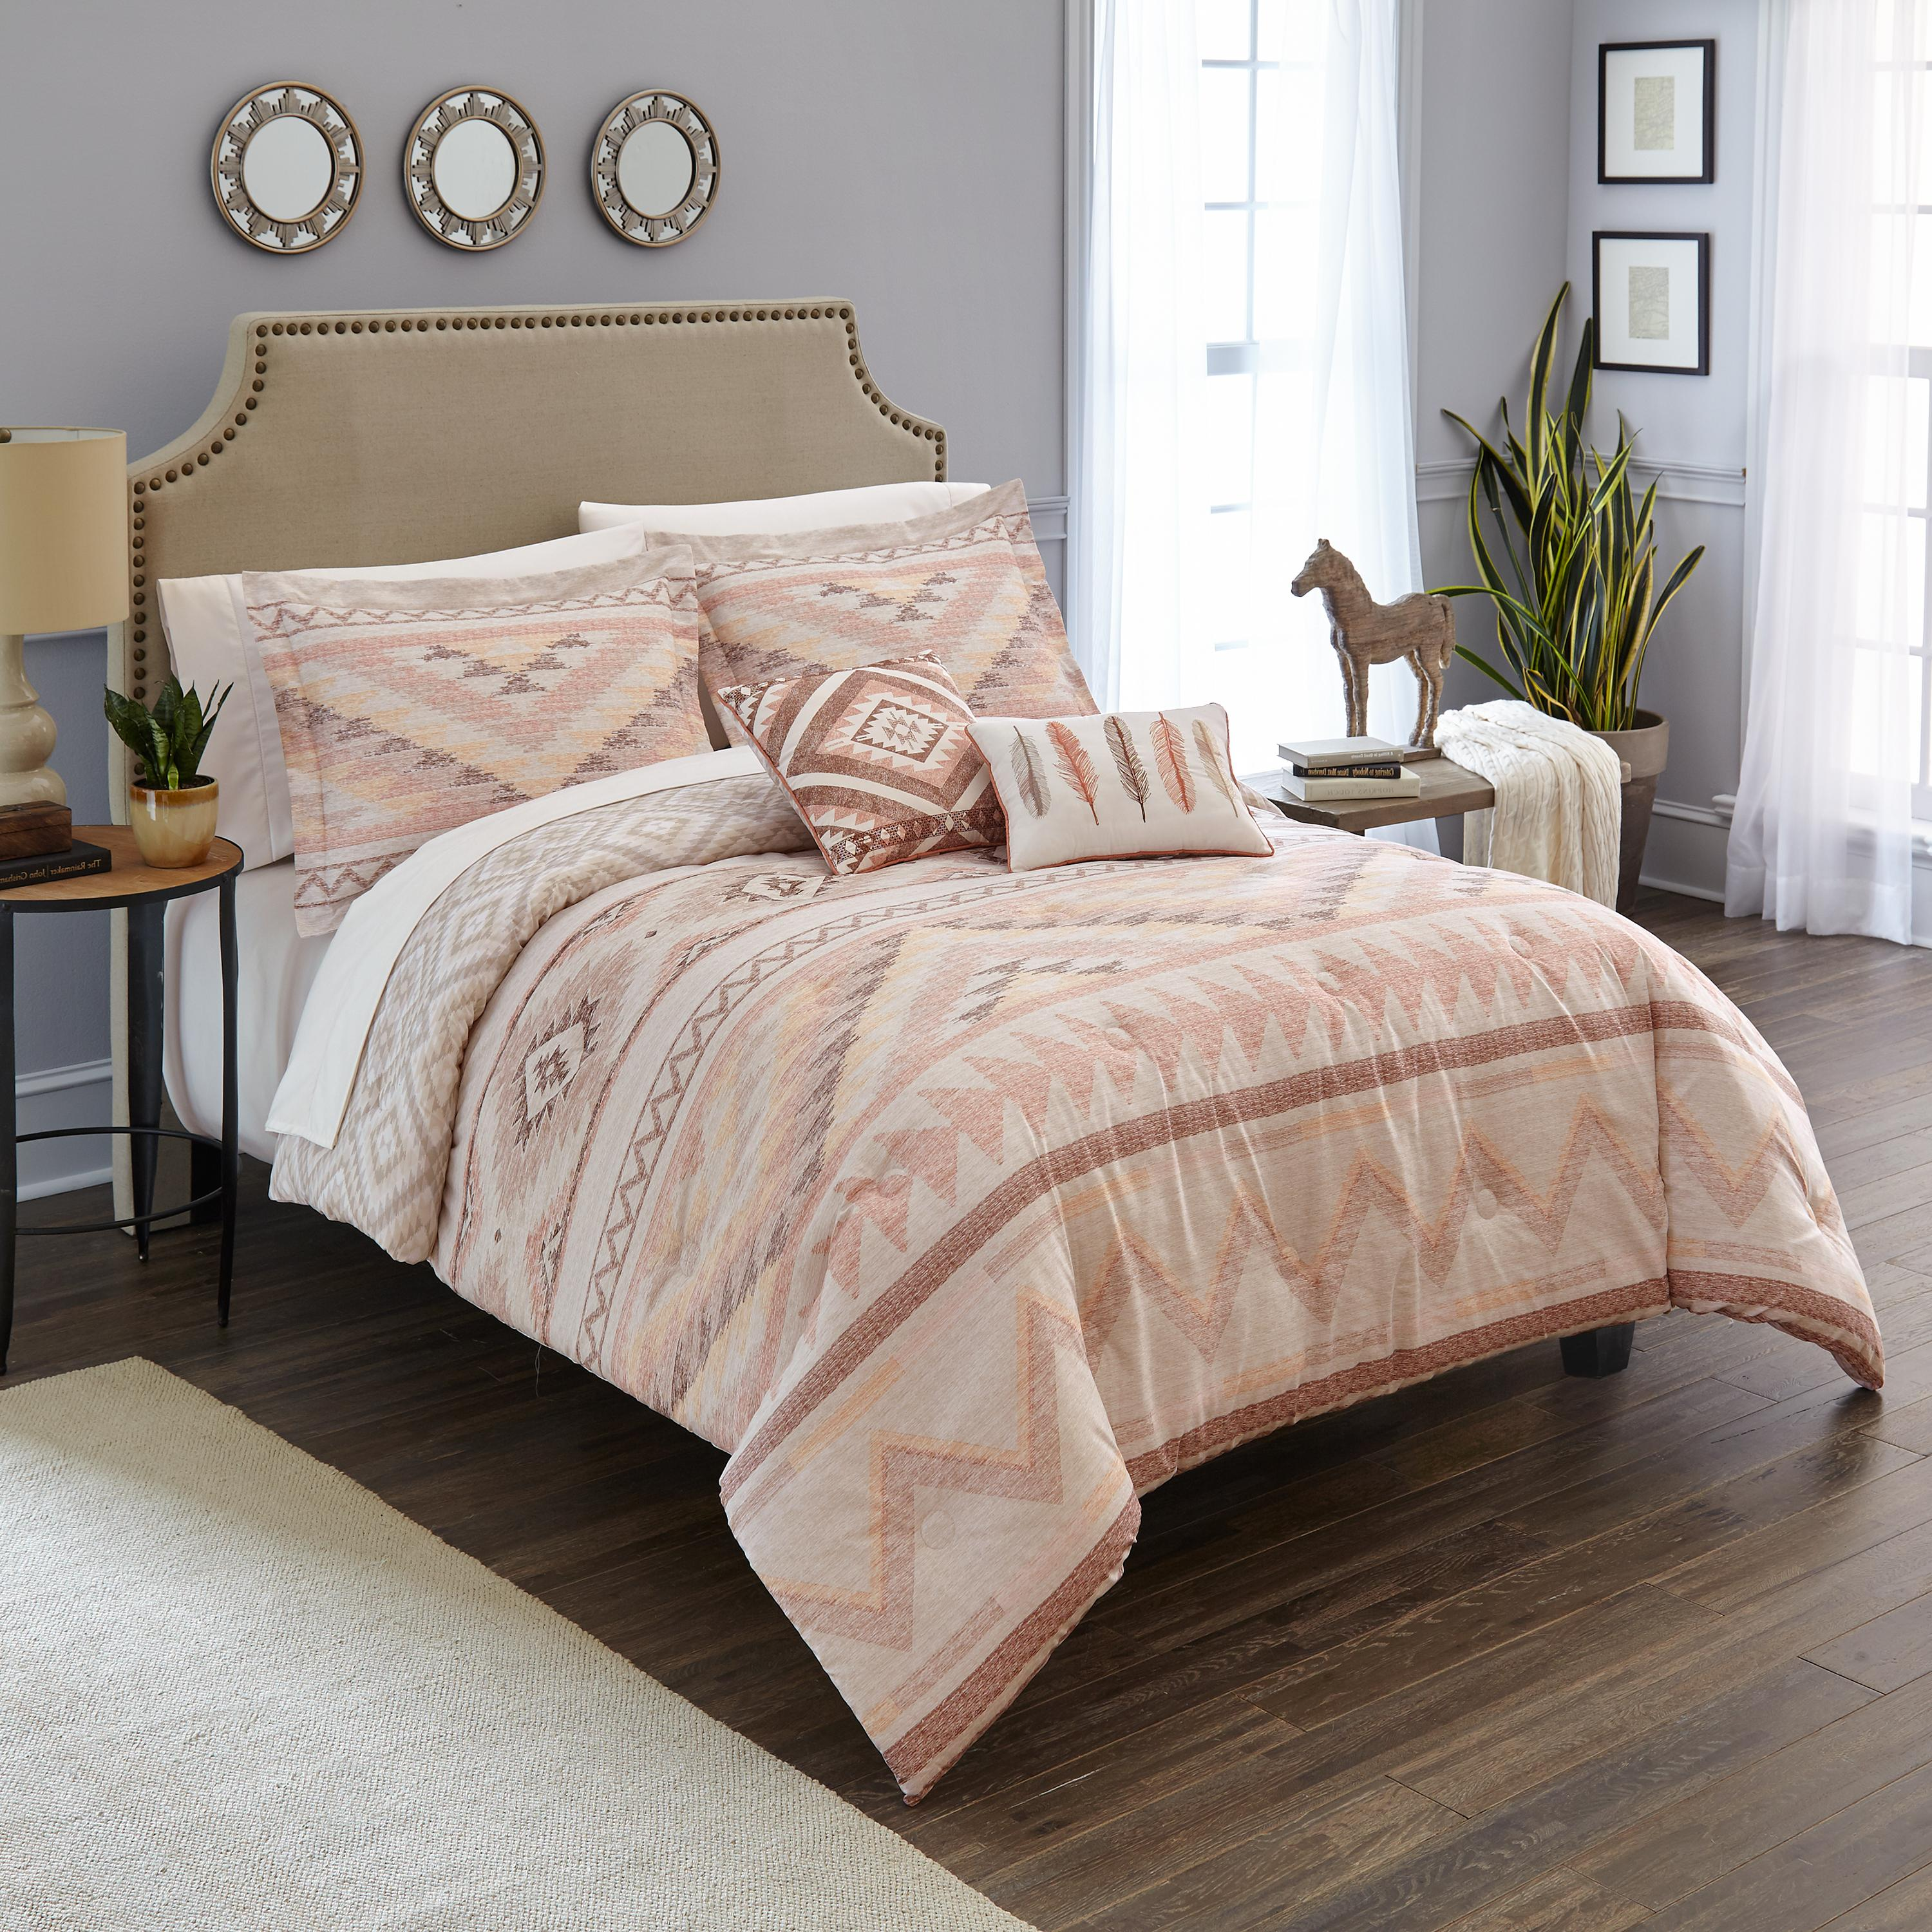 Better Homes & Gardens Full or Queen Santa Fe Comforter Set, 5 piece